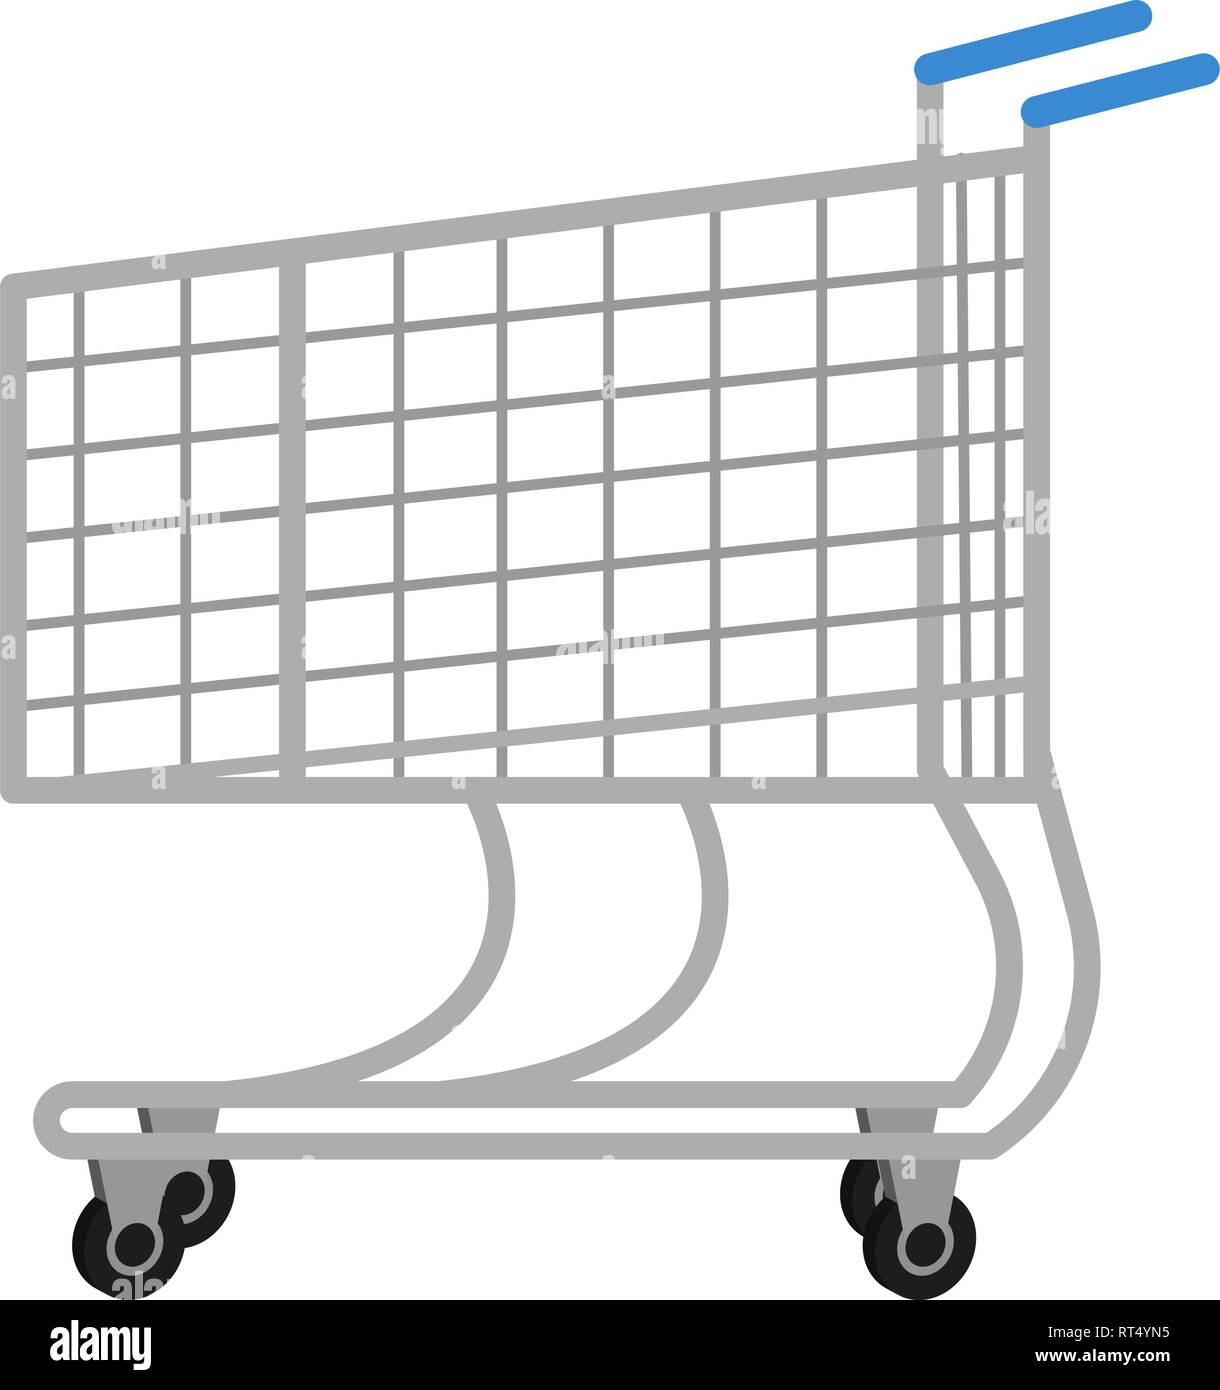 Shopping trolley for icons in flat style, trolley from a supermarket vector illustration on white background - Stock Image